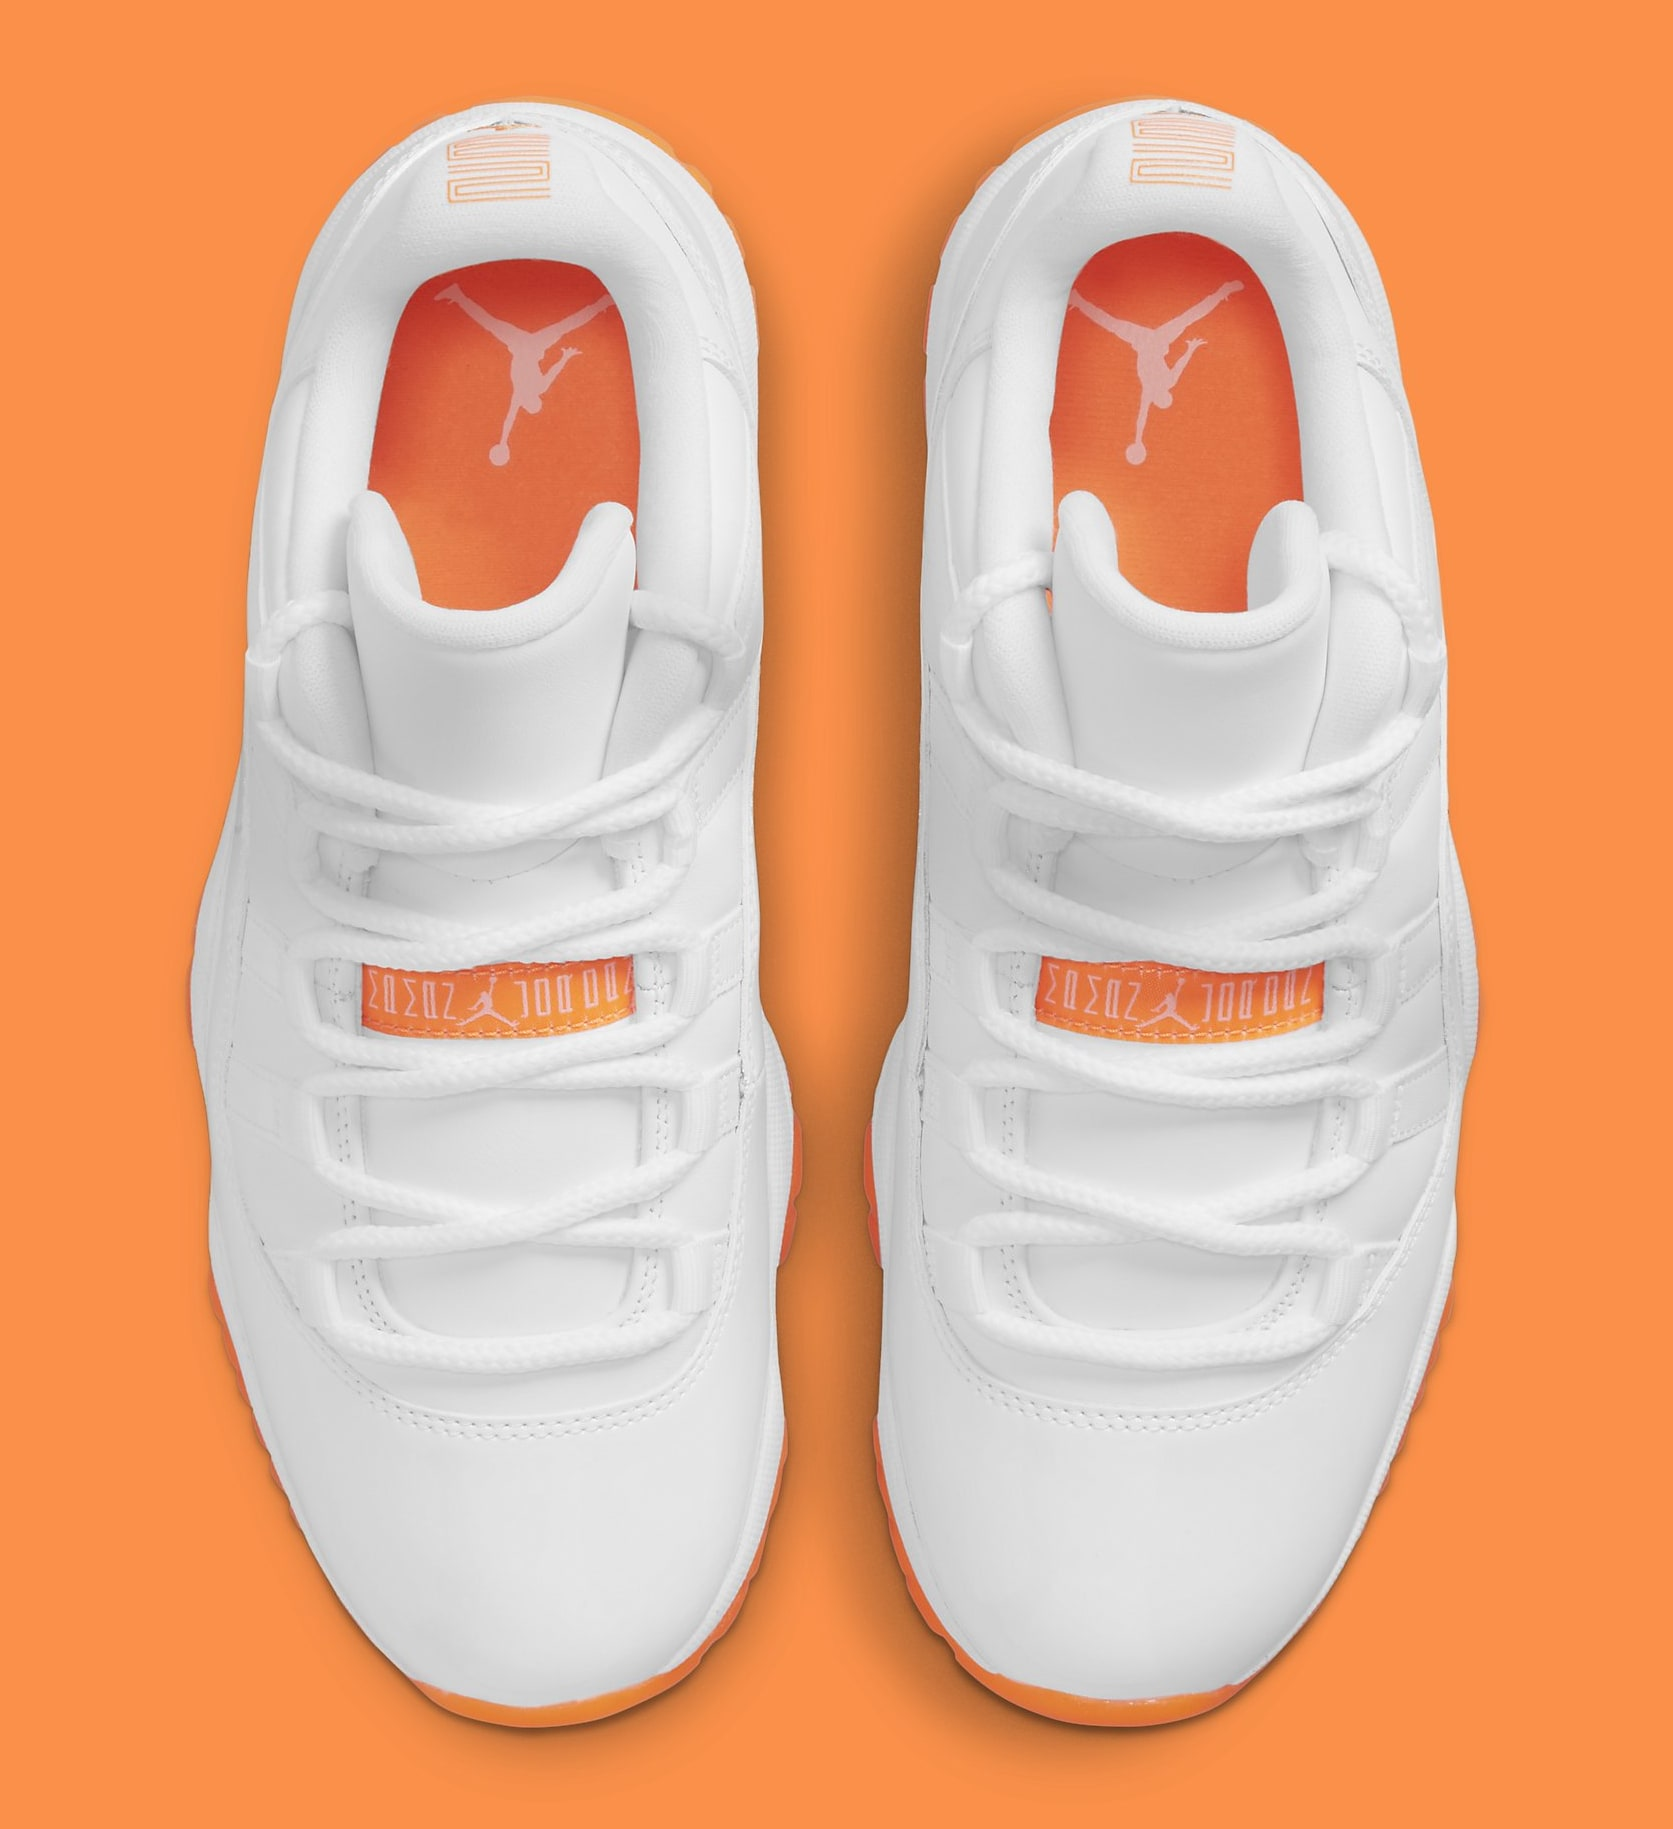 Air Jordan 11 Retro Low Women's 'Citrus' AH7860-139 Top